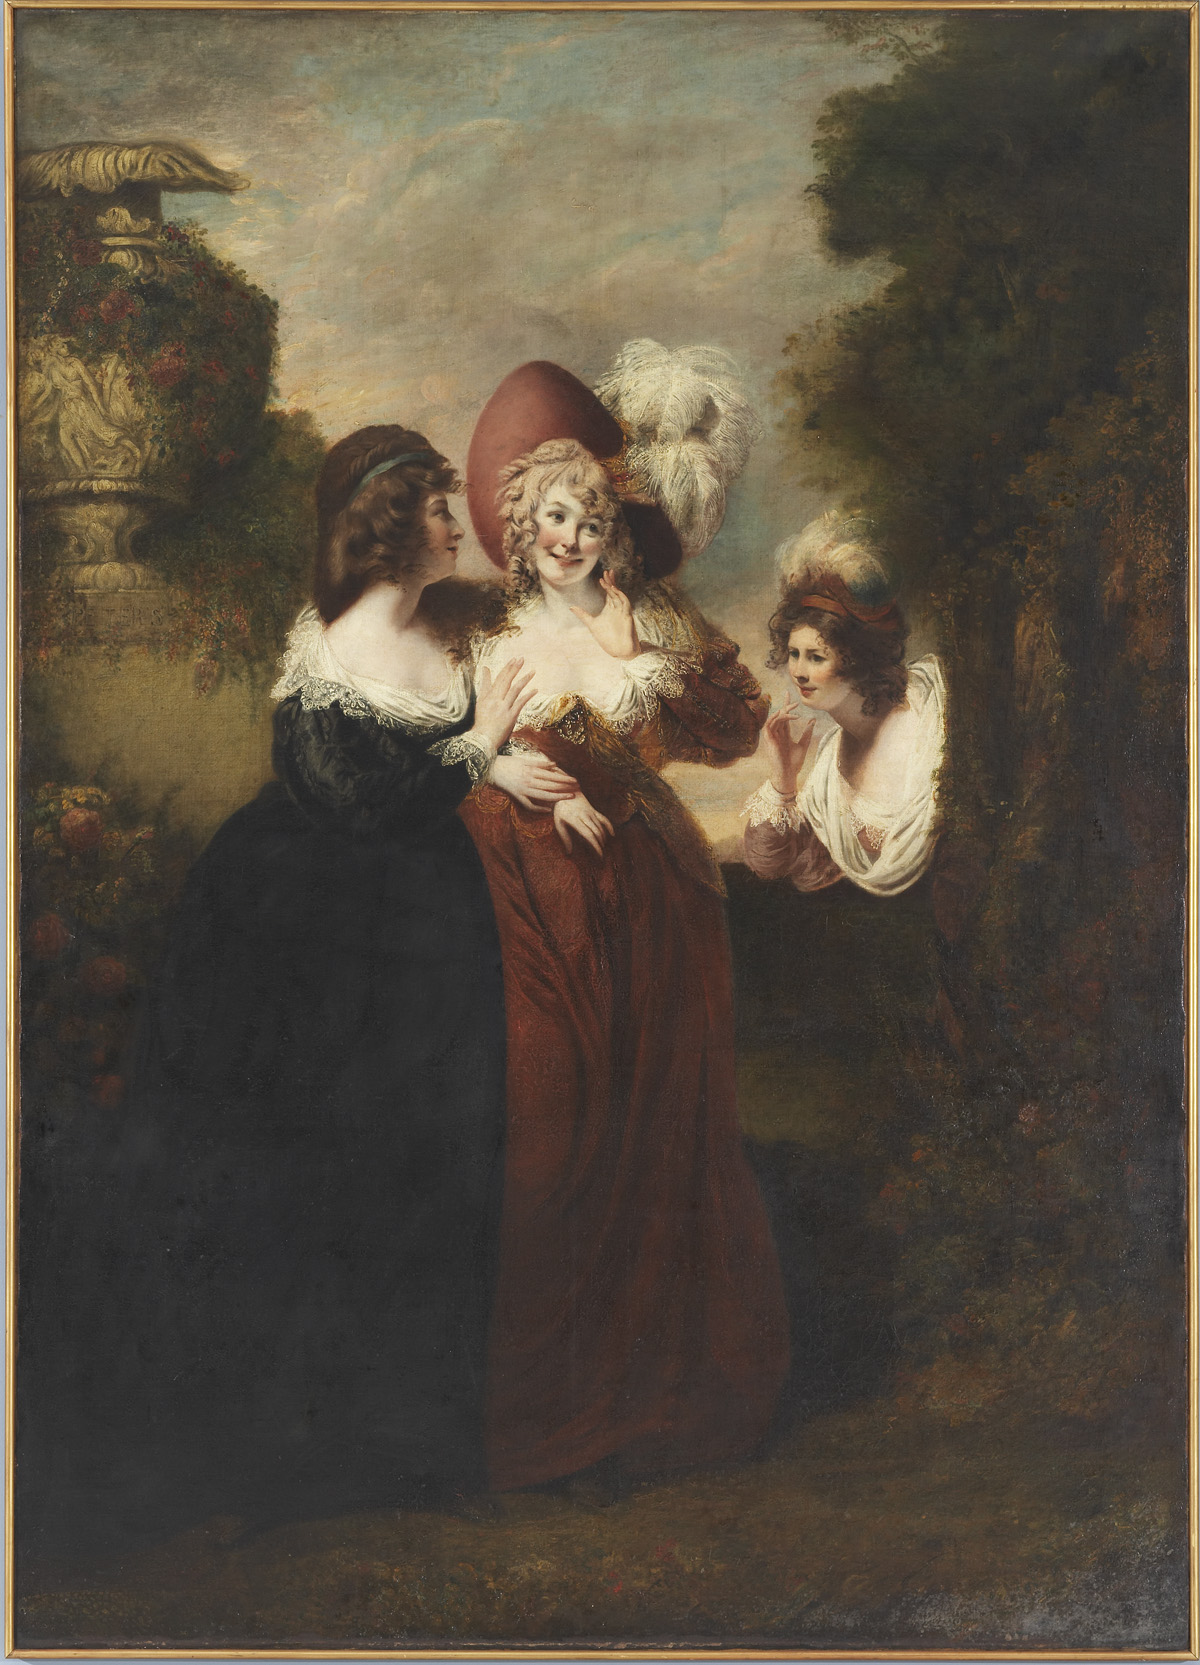 Hero, Ursula, and Beatrice in Leonato's Garden (act 3, scene 1 from Much Ado About Nothing)